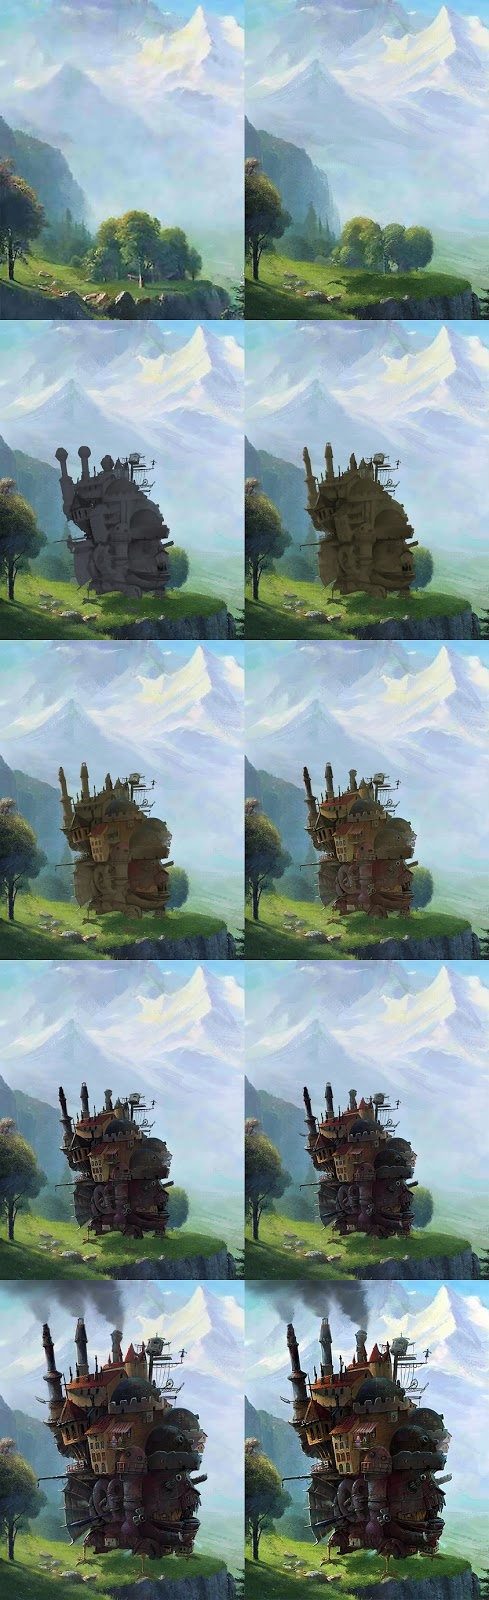 Step-by-step process of the Moving Castle in the Staubbach environment